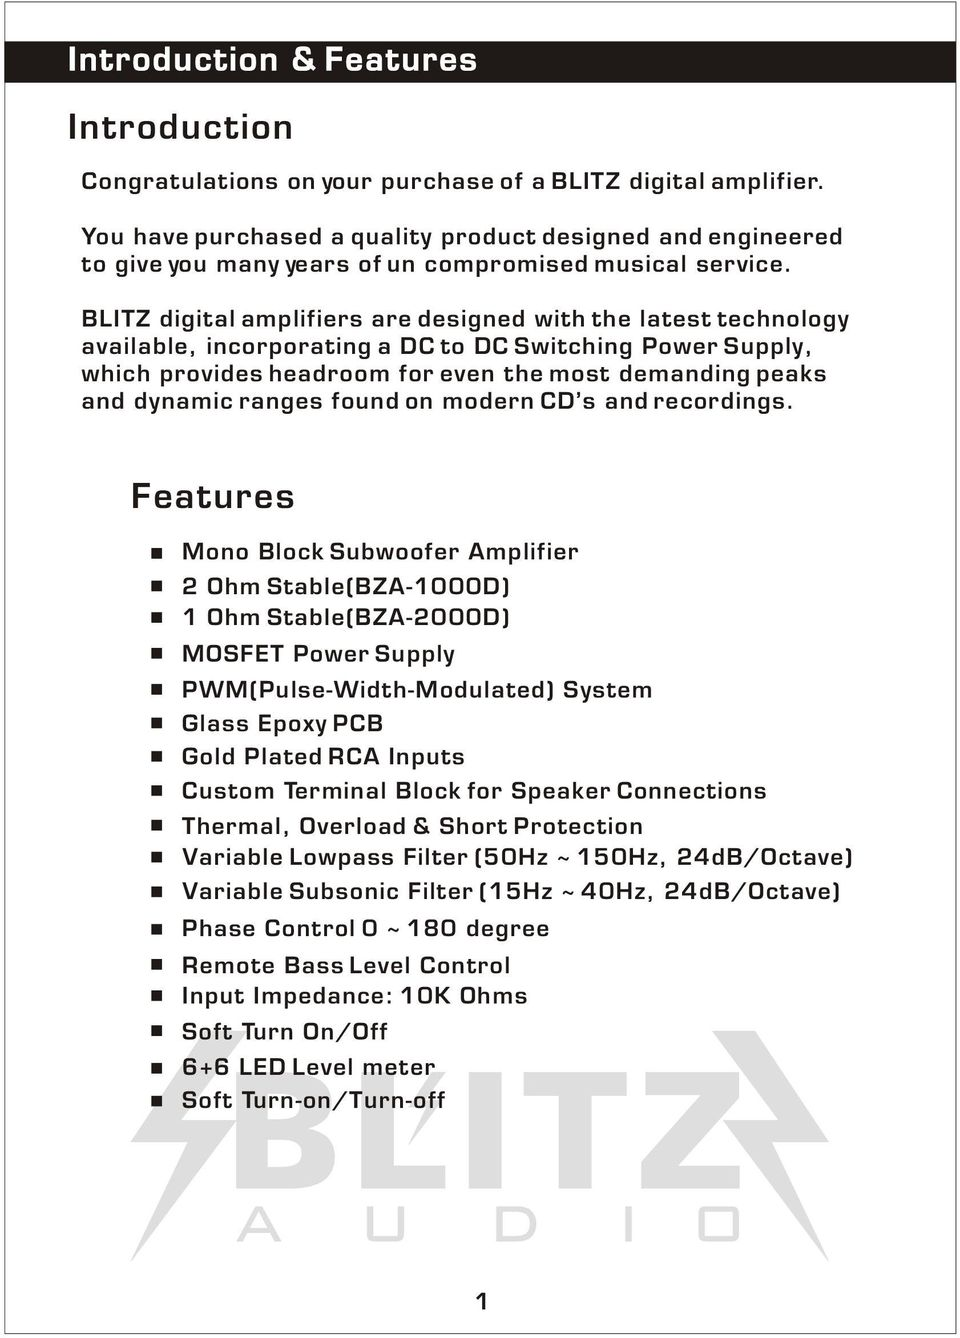 Class D Mono Block Power Amplifiers Bza 1000d 2000d Owners Insanity Can Be Yours 1500w 4 Ohms Amplifier Blitz Digital Are Designed With The Latest Technology Available Incorporating A Dc To